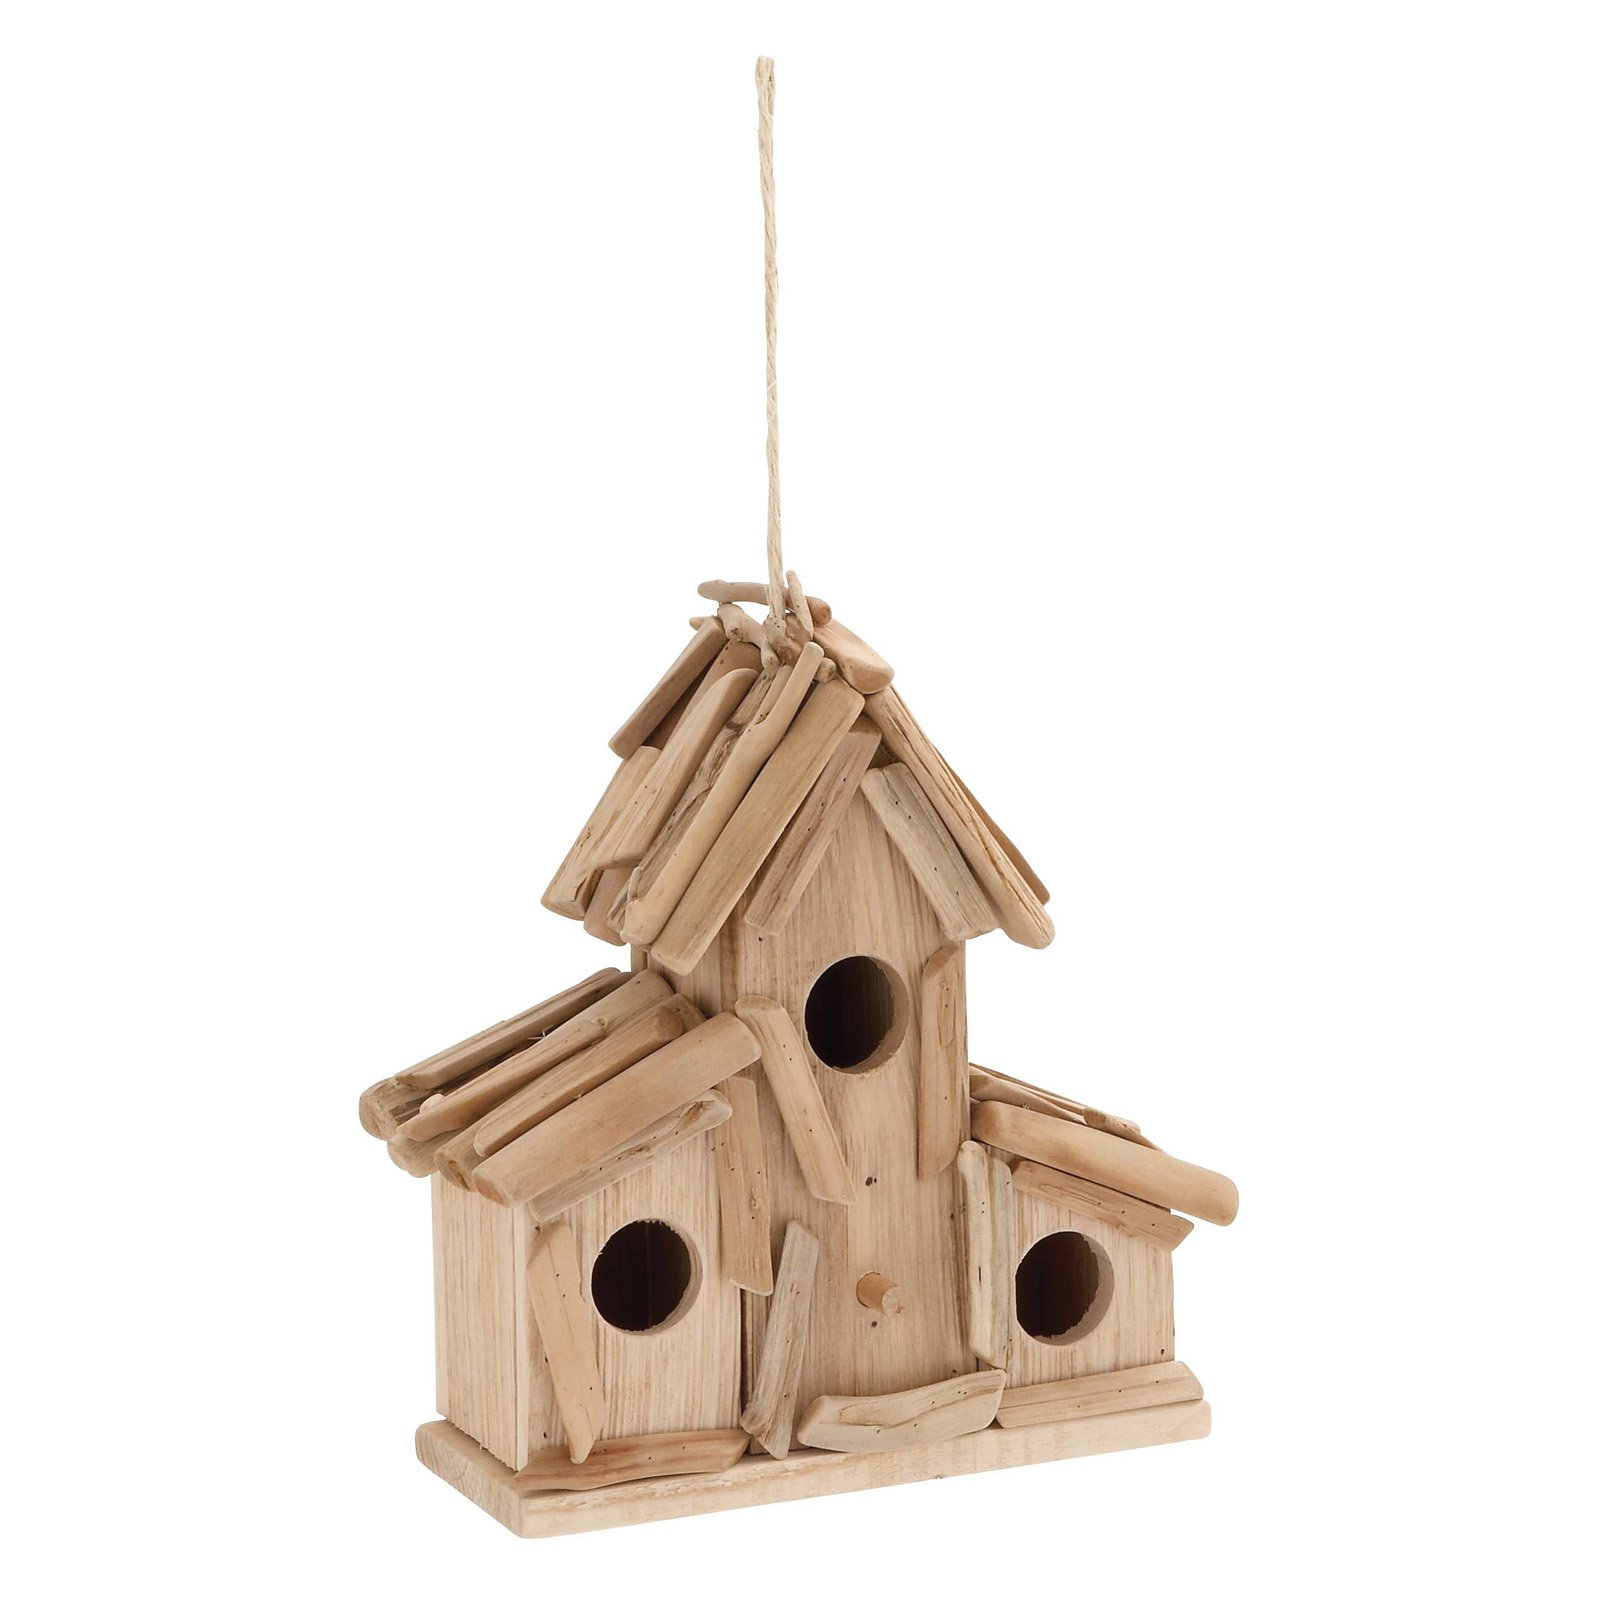 Decmode Driftwood Birdhouse, Natural by Bird Houses